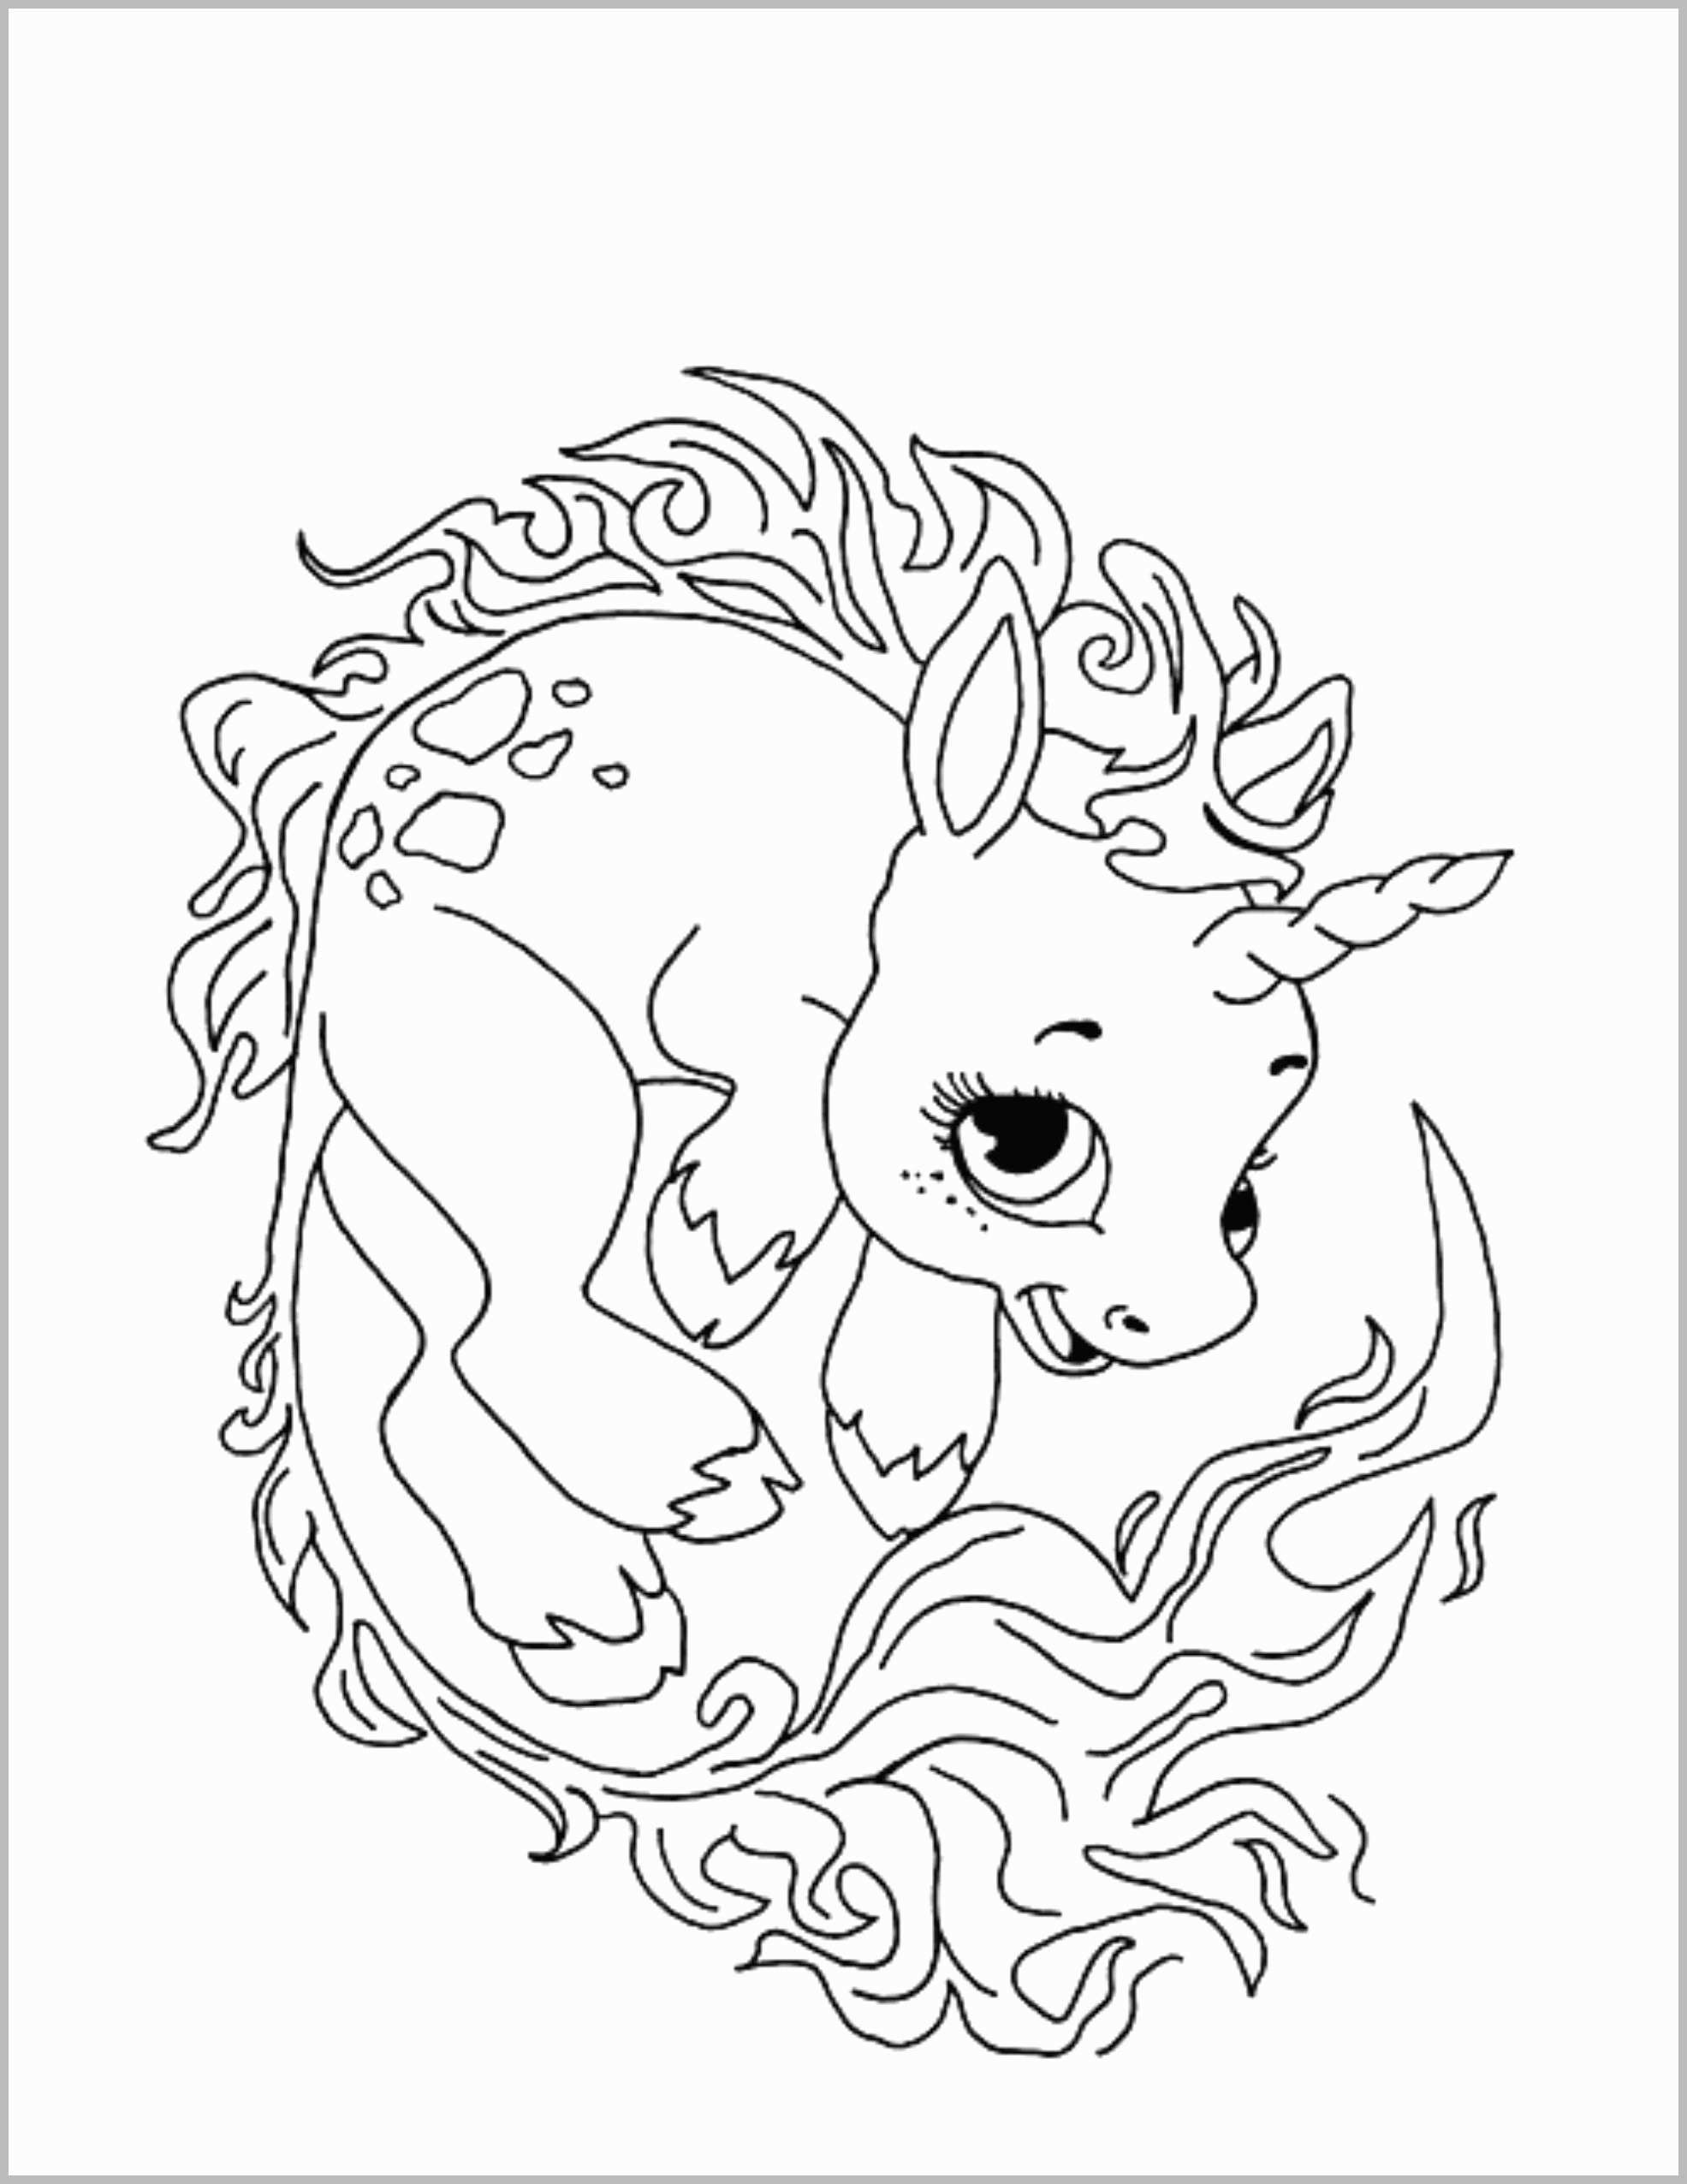 Jojo Siwa Coloring Pages Jojo Siwa Coloring Book Pages In 2020 Mermaid Coloring Pages Unicorn Coloring Pages Cute Coloring Pages